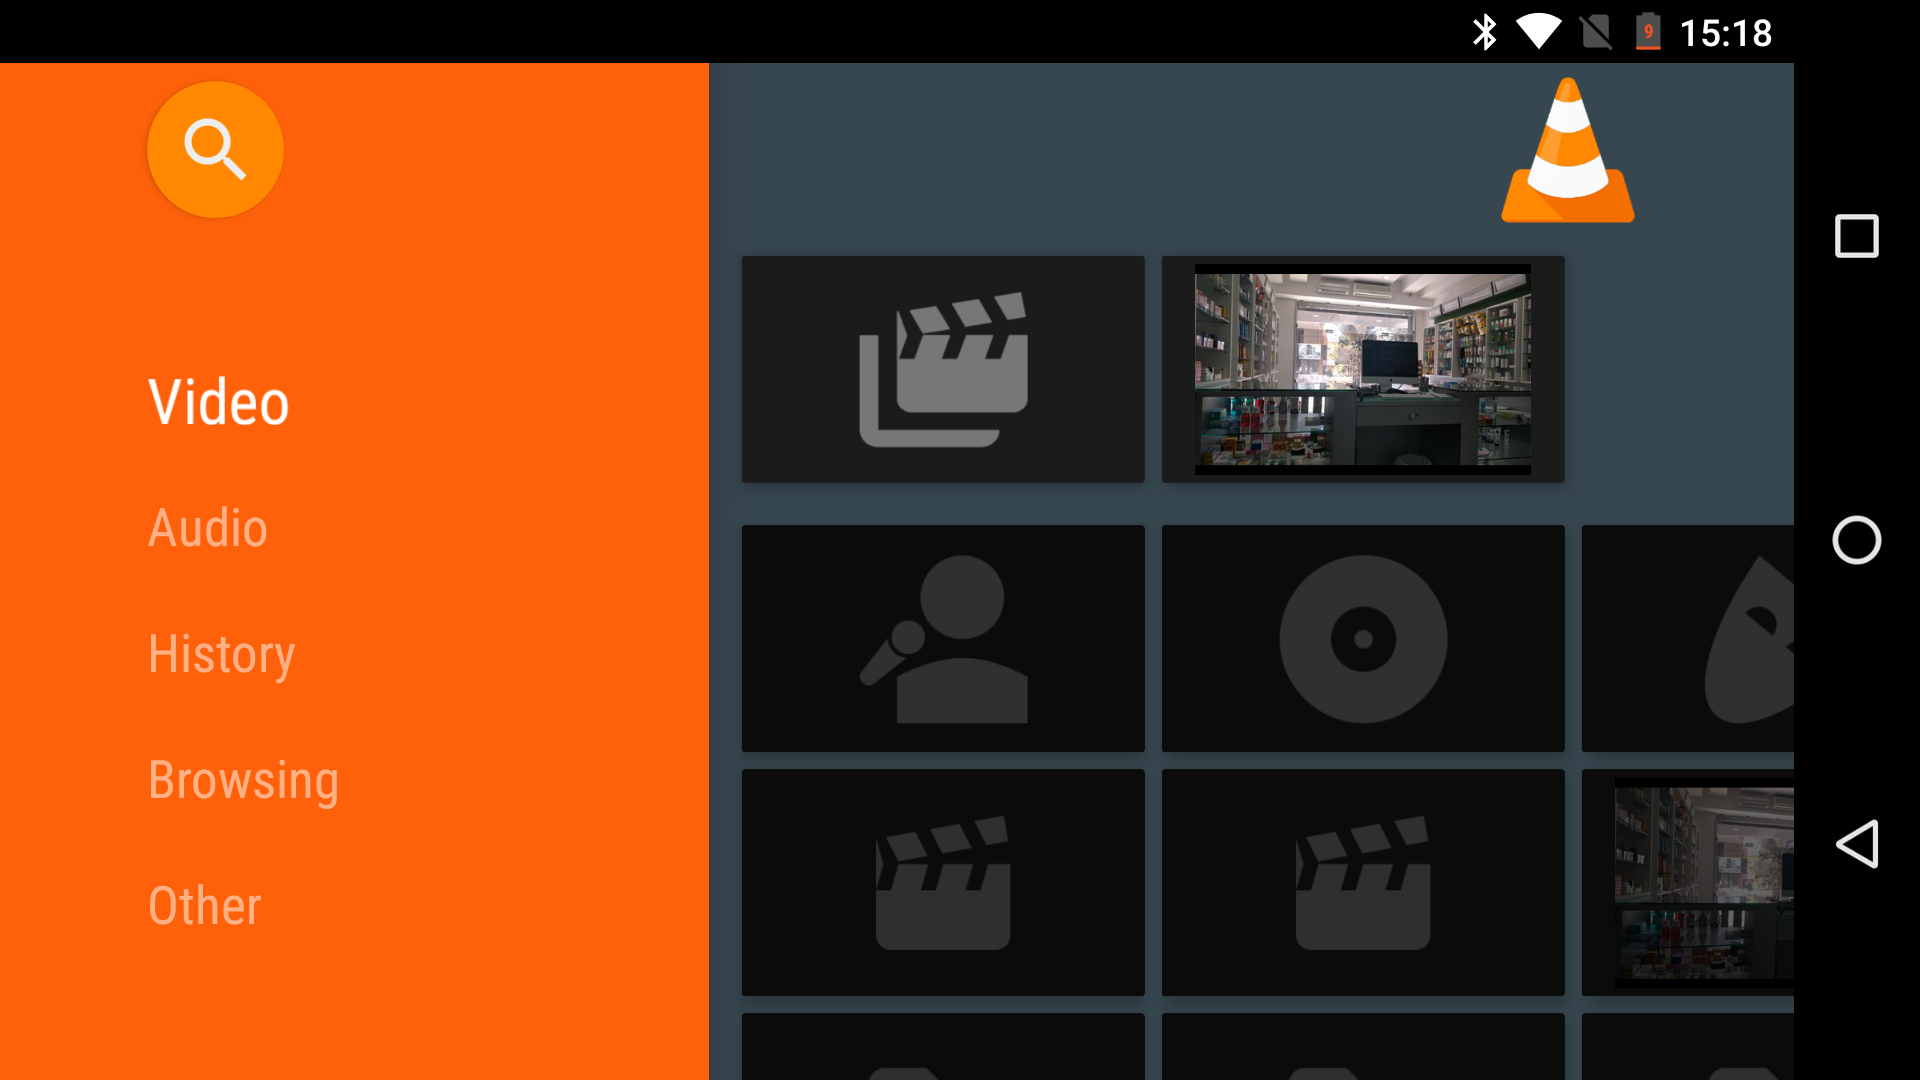 vlc-android-tv-2